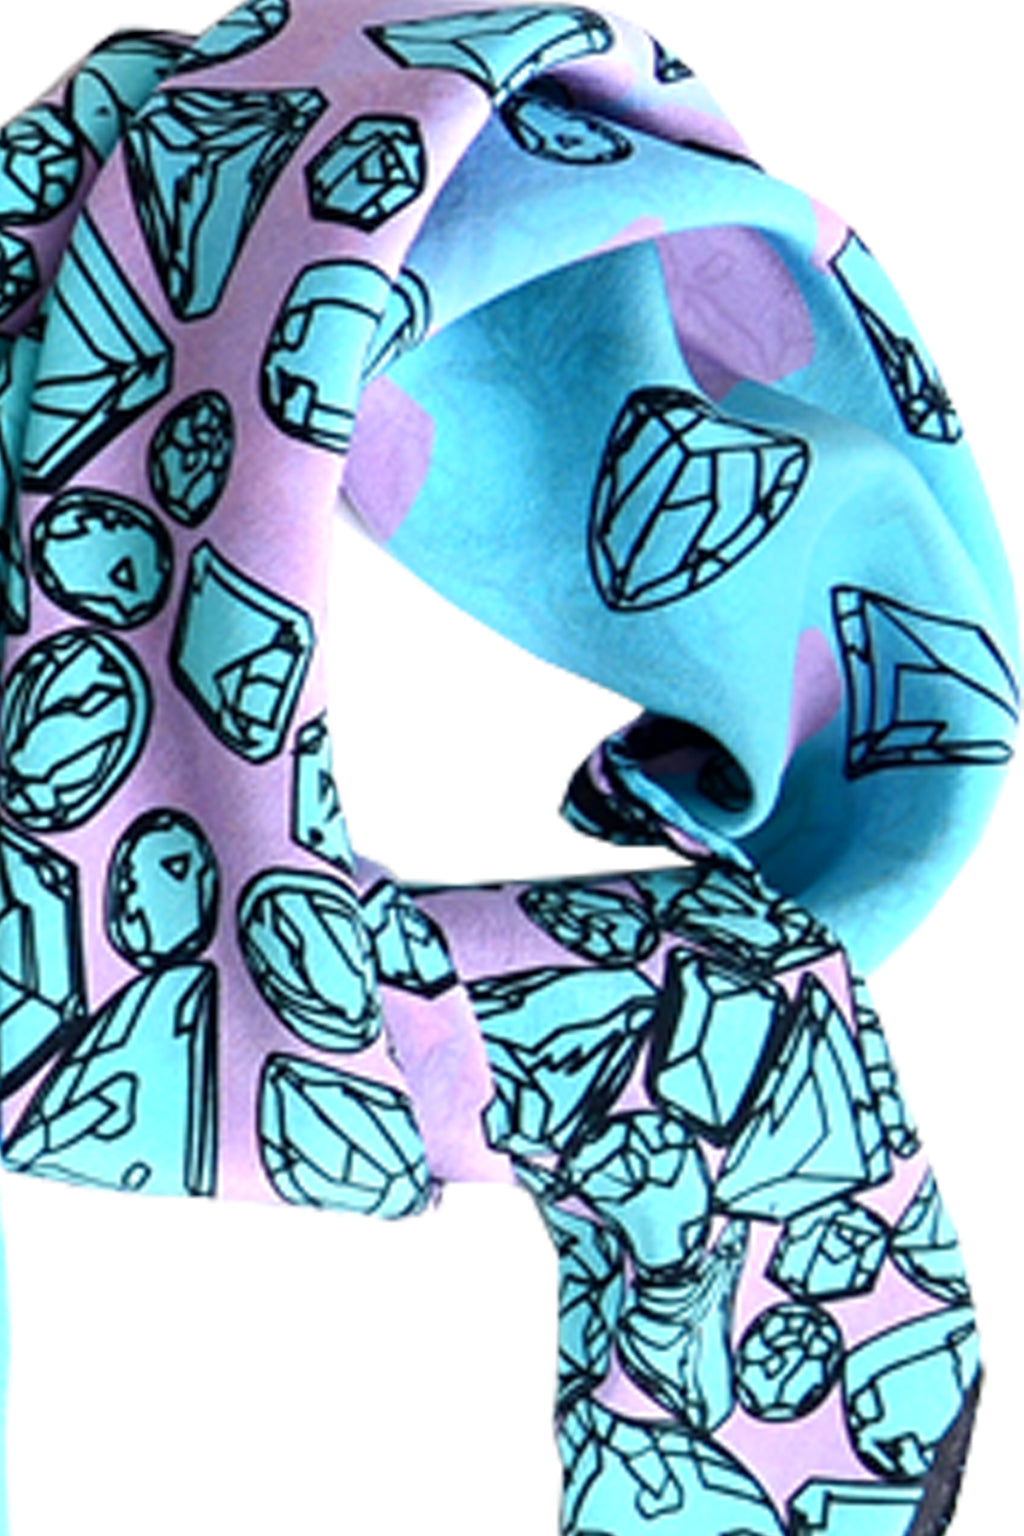 GEM SPOT 70 X 70 CM SILK NECK SCARF